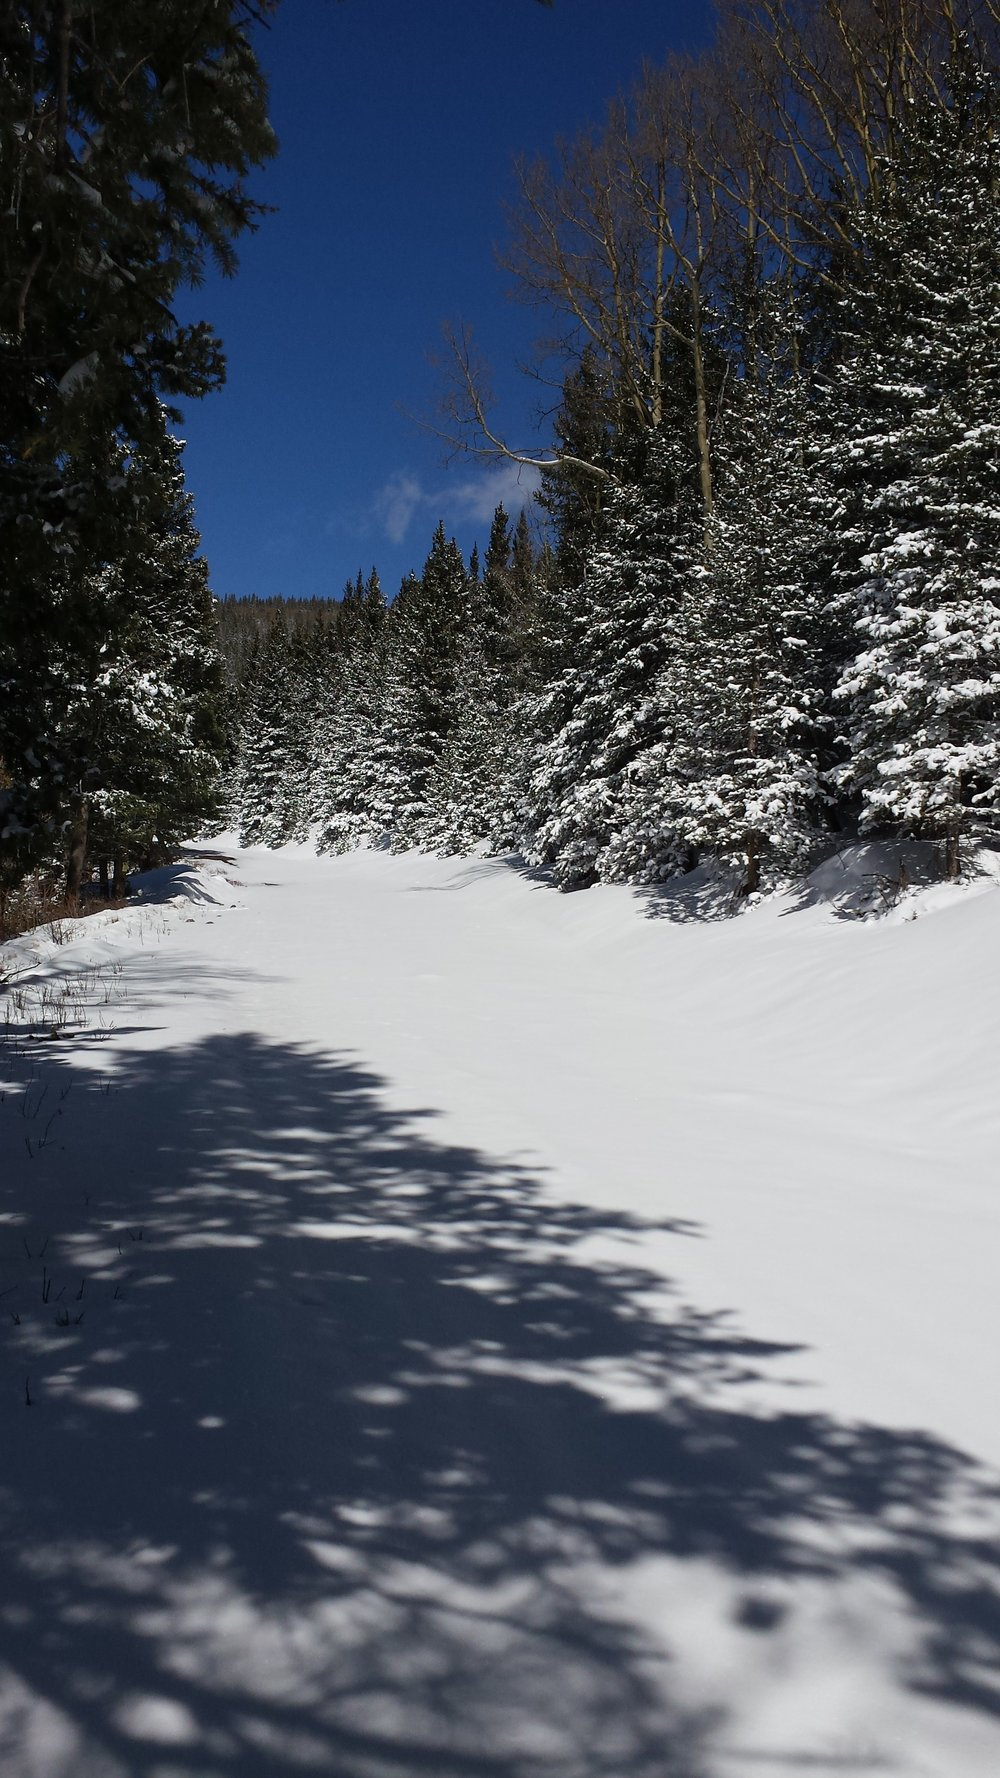 Snowshoes from this point